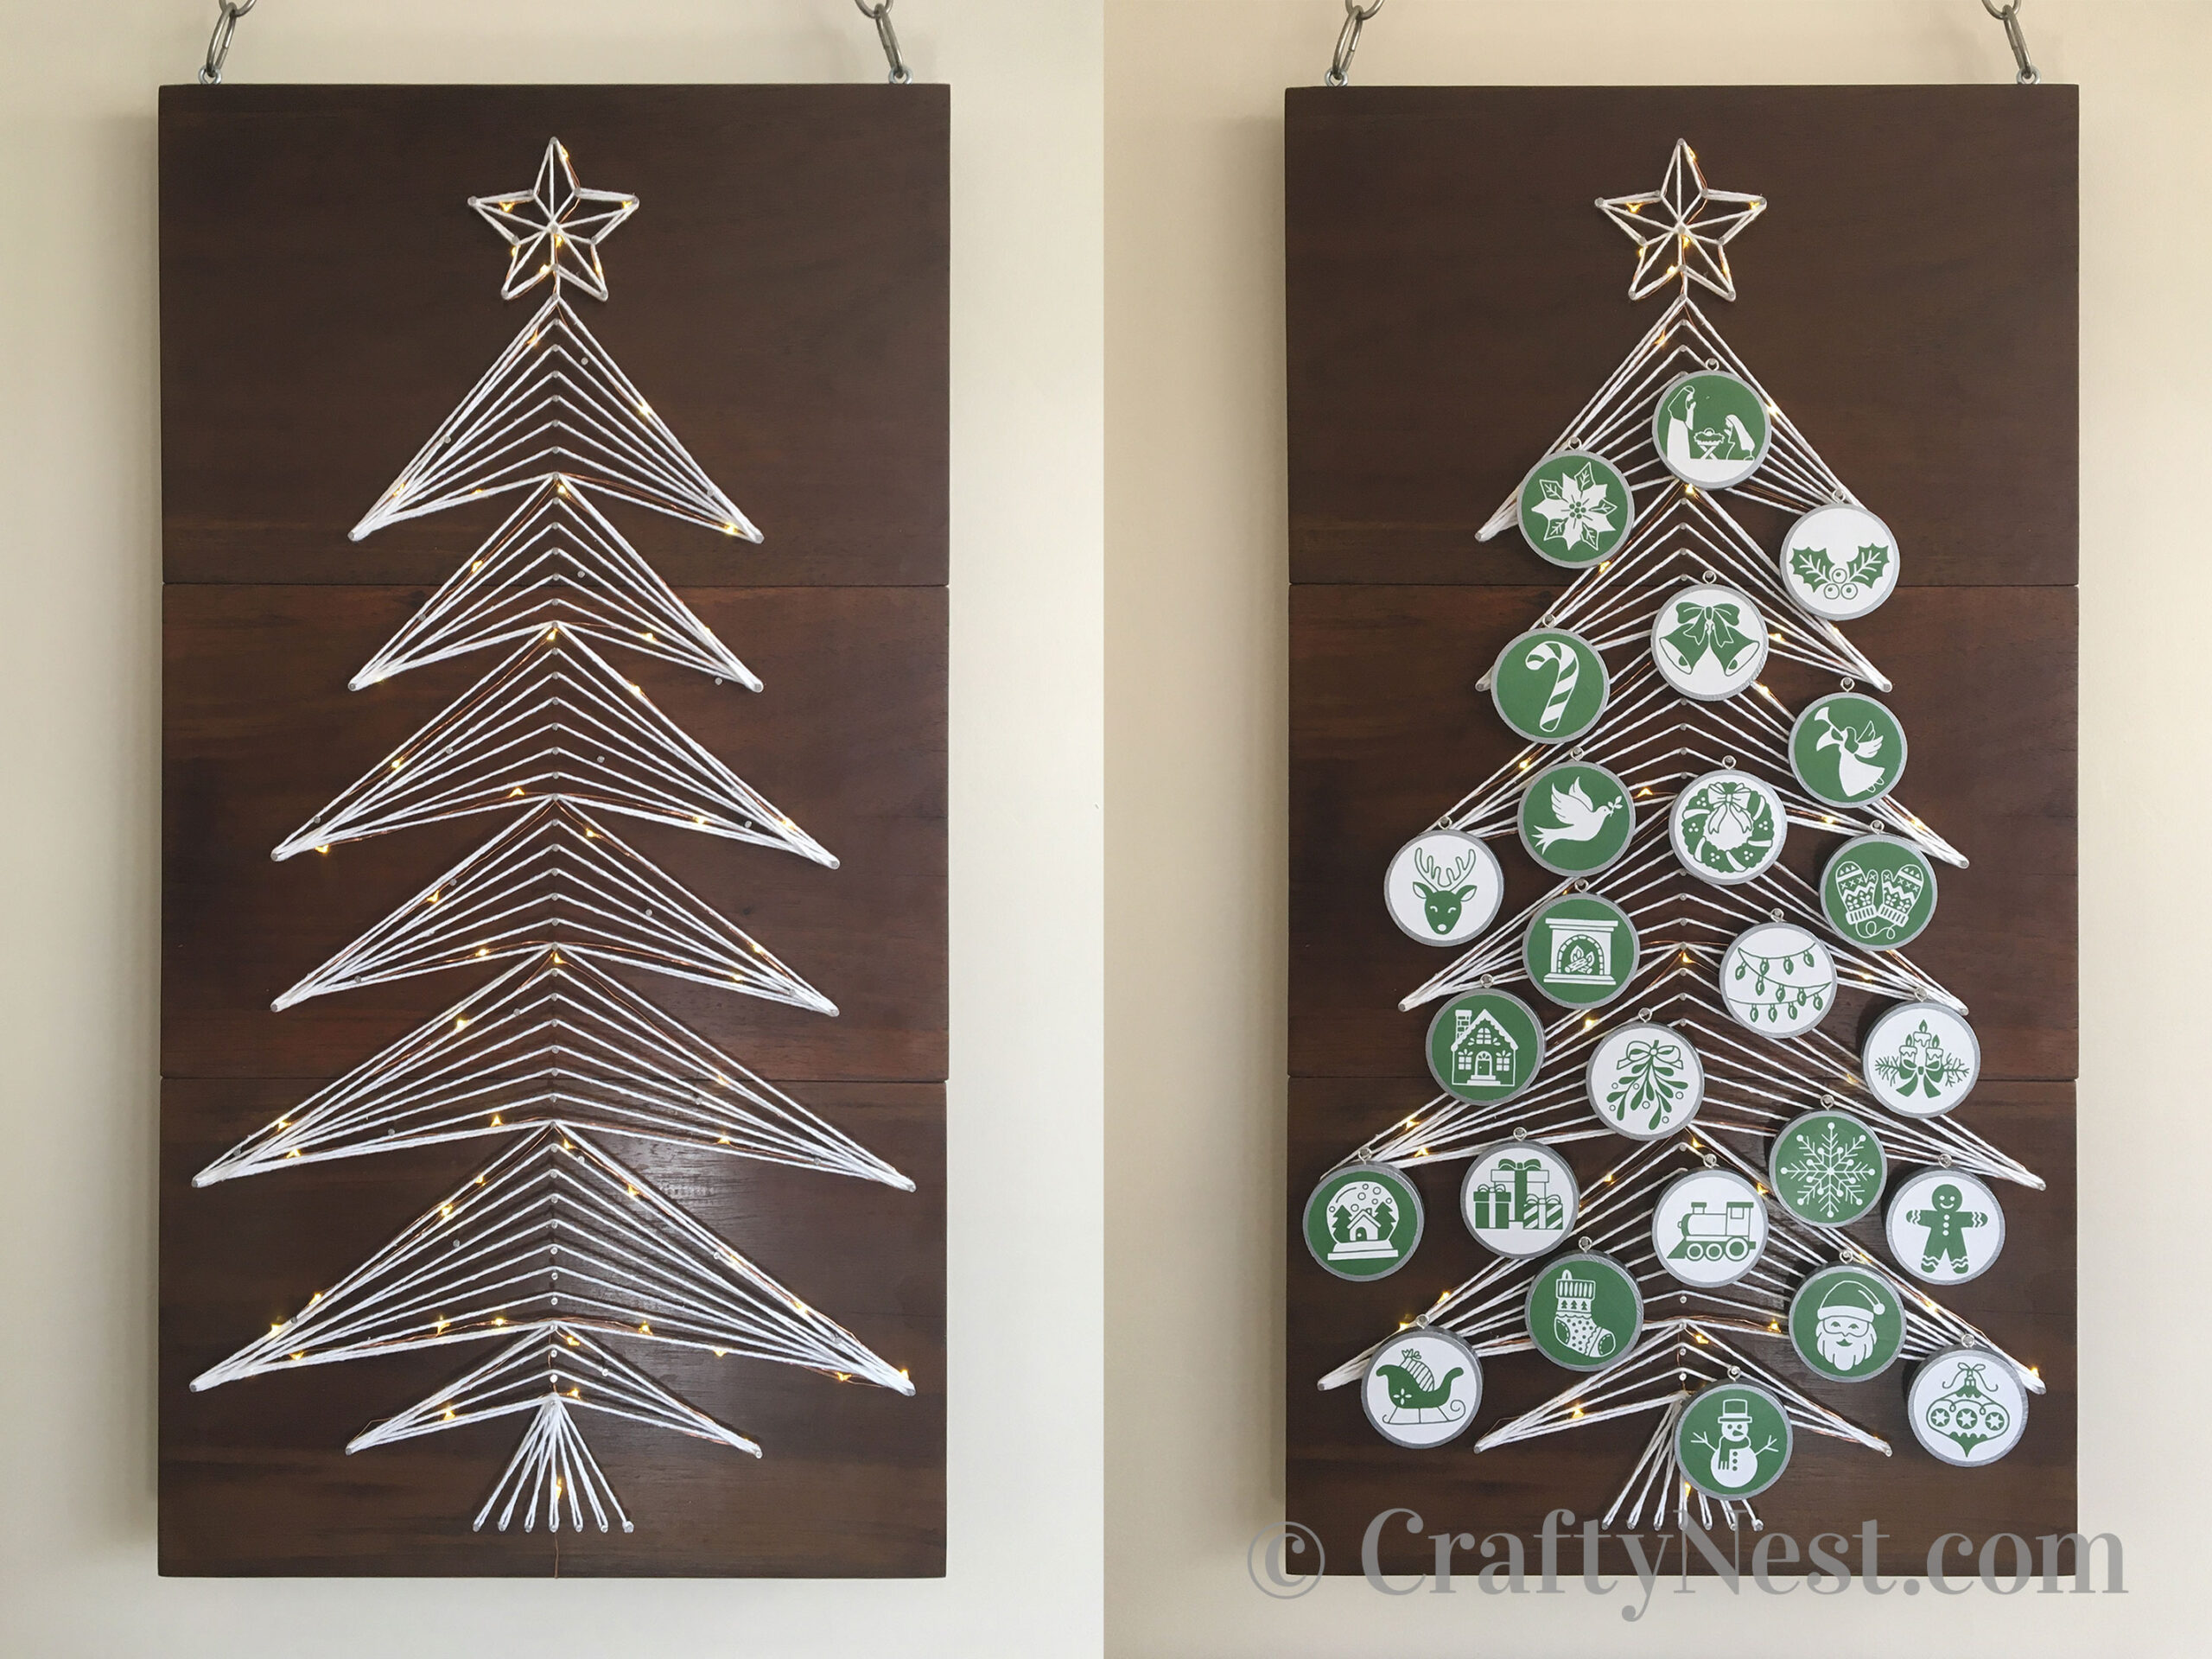 String-art Christmas tree with lights - with and without ornaments - photo